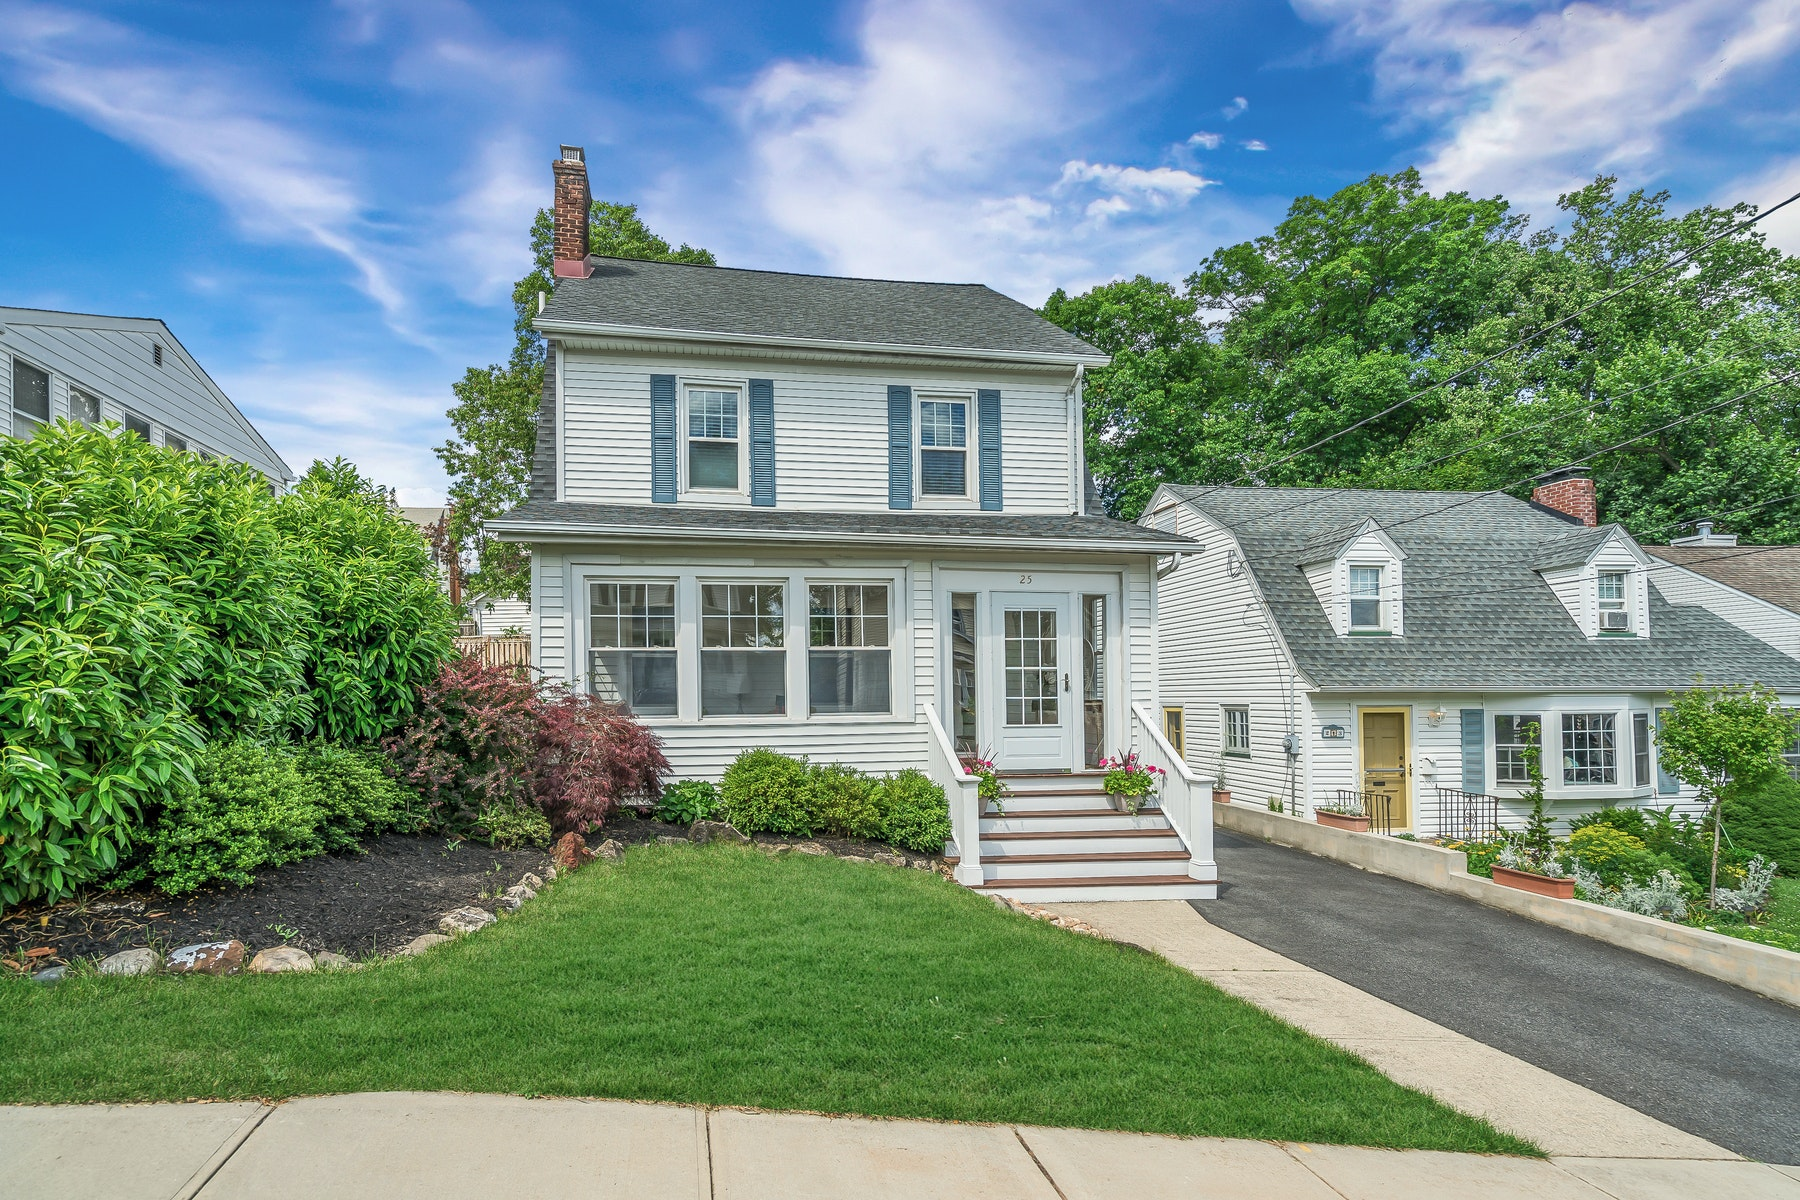 Single Family Homes for Active at Charming Colonial 25 Moore Terrace West Orange, New Jersey 07052 United States